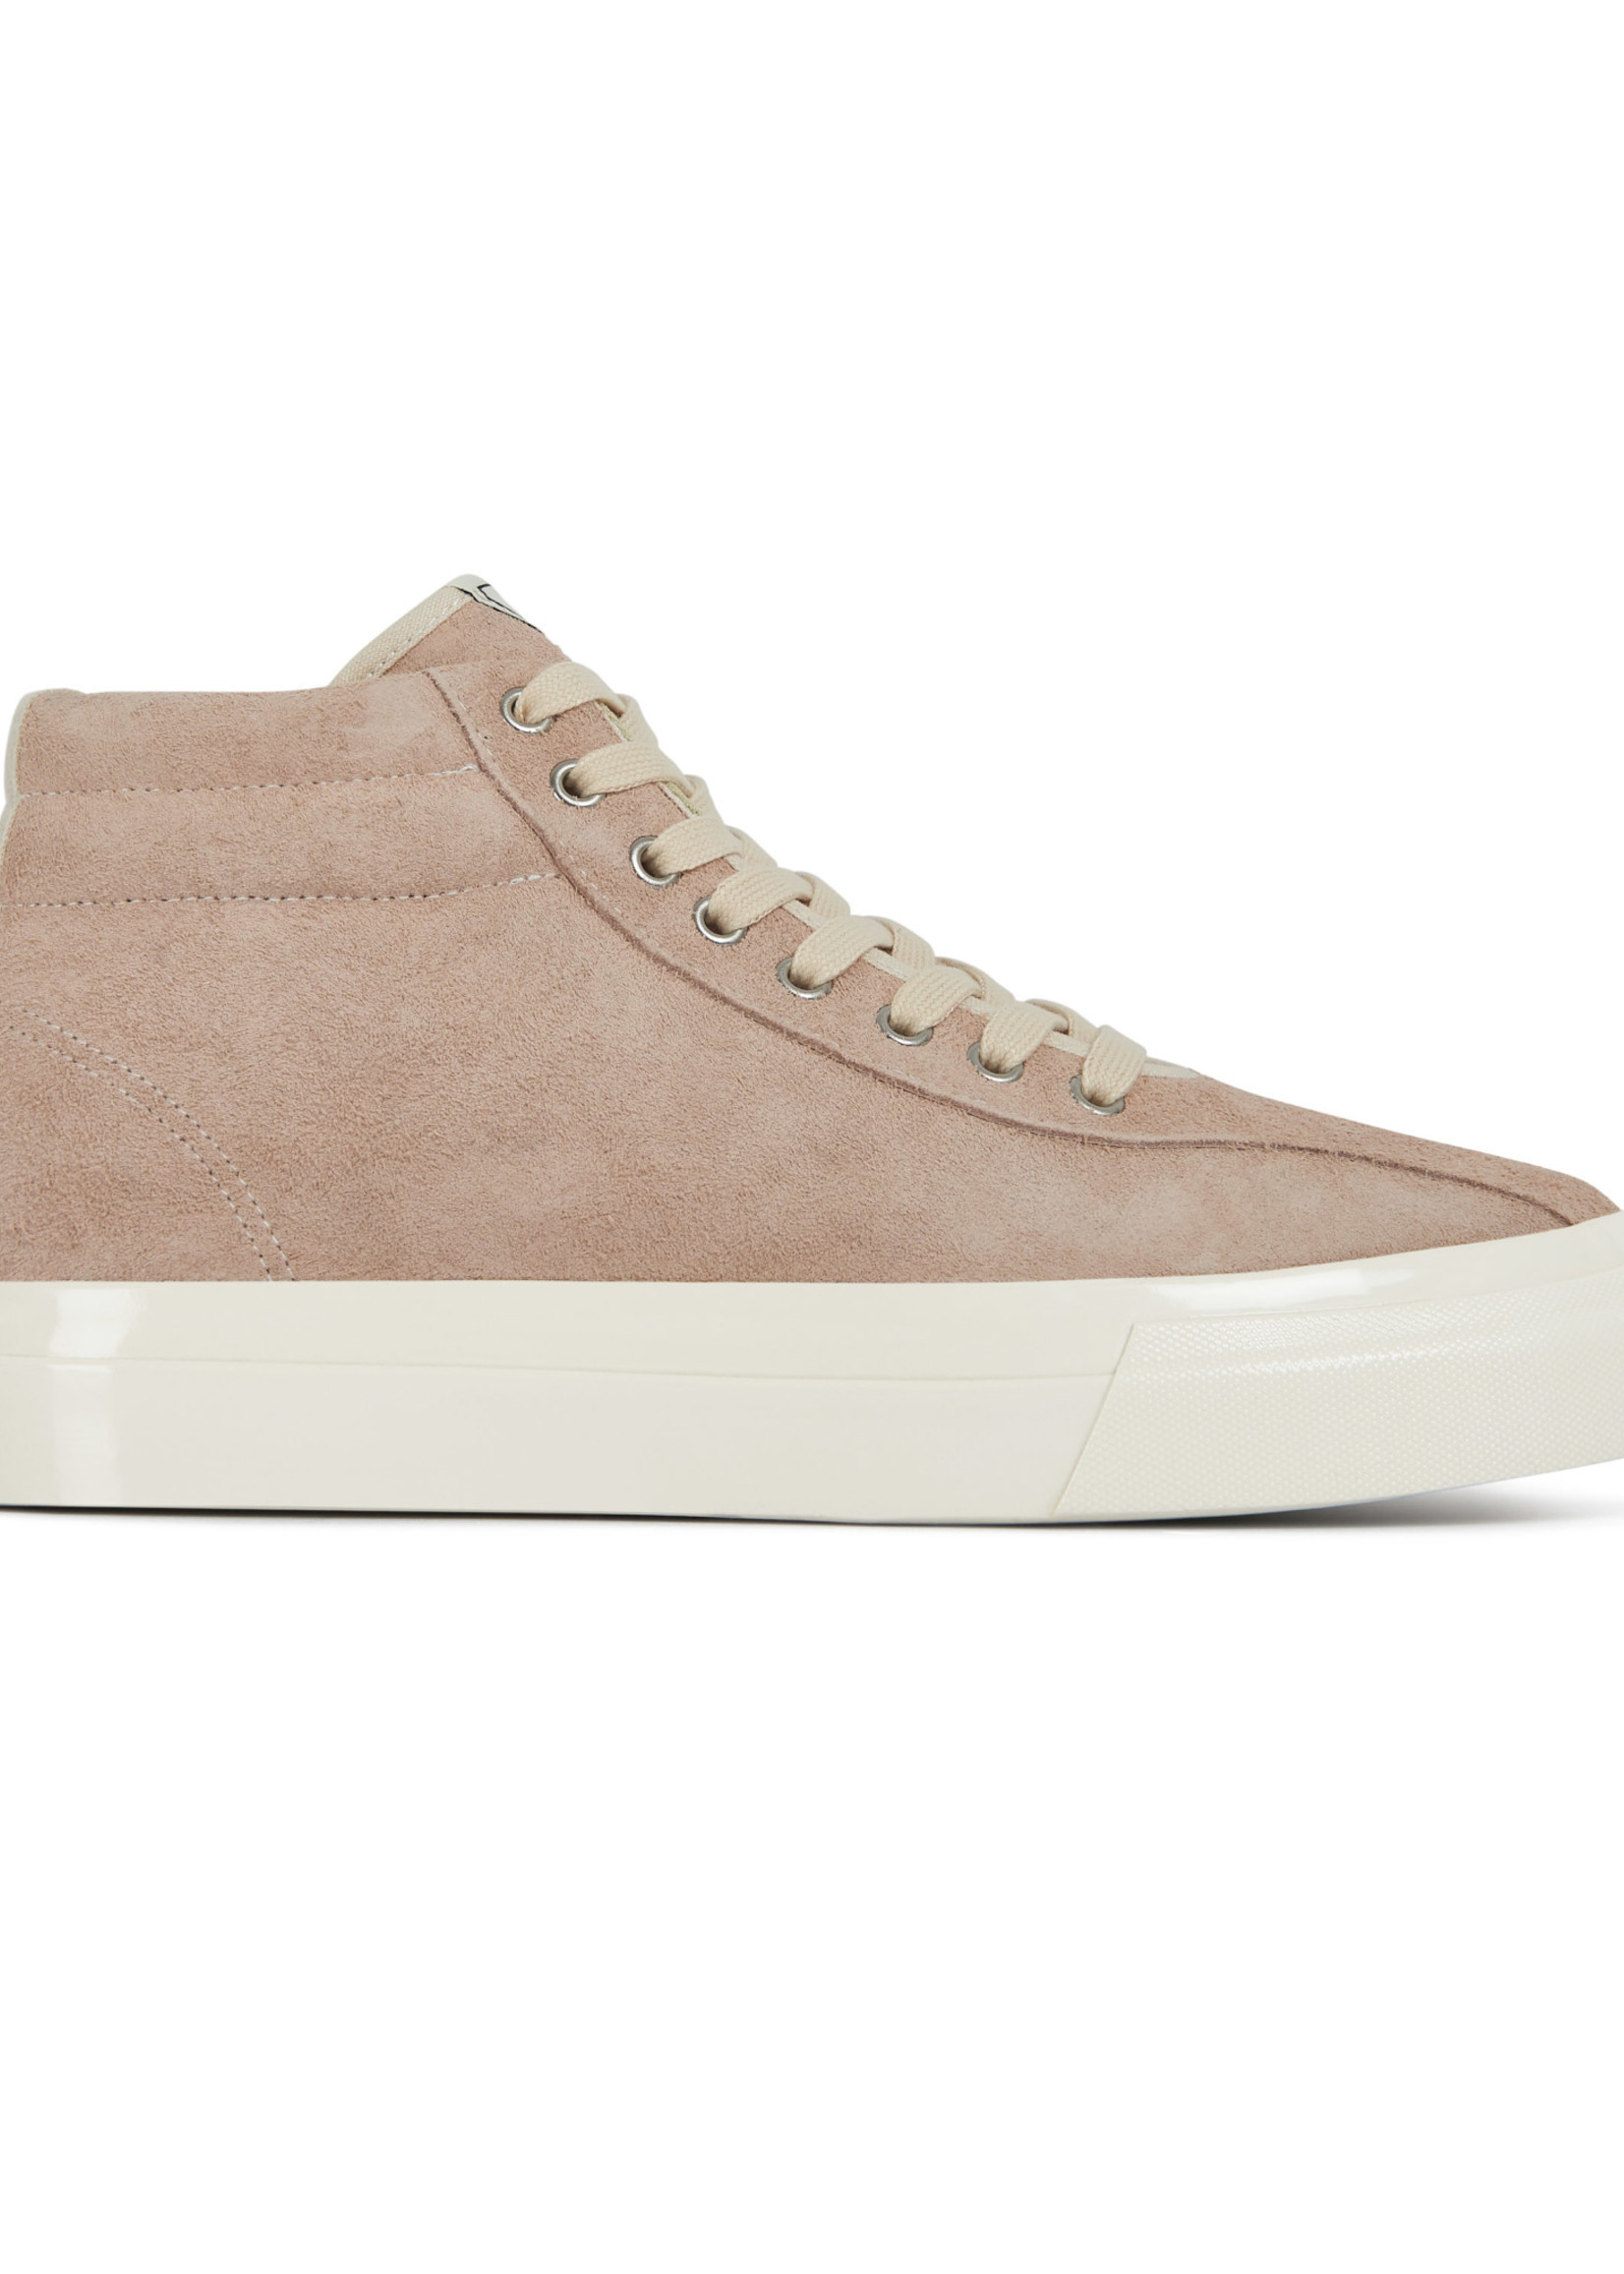 Stepney Workers Club SWC Varden High Tops in Pink Suede